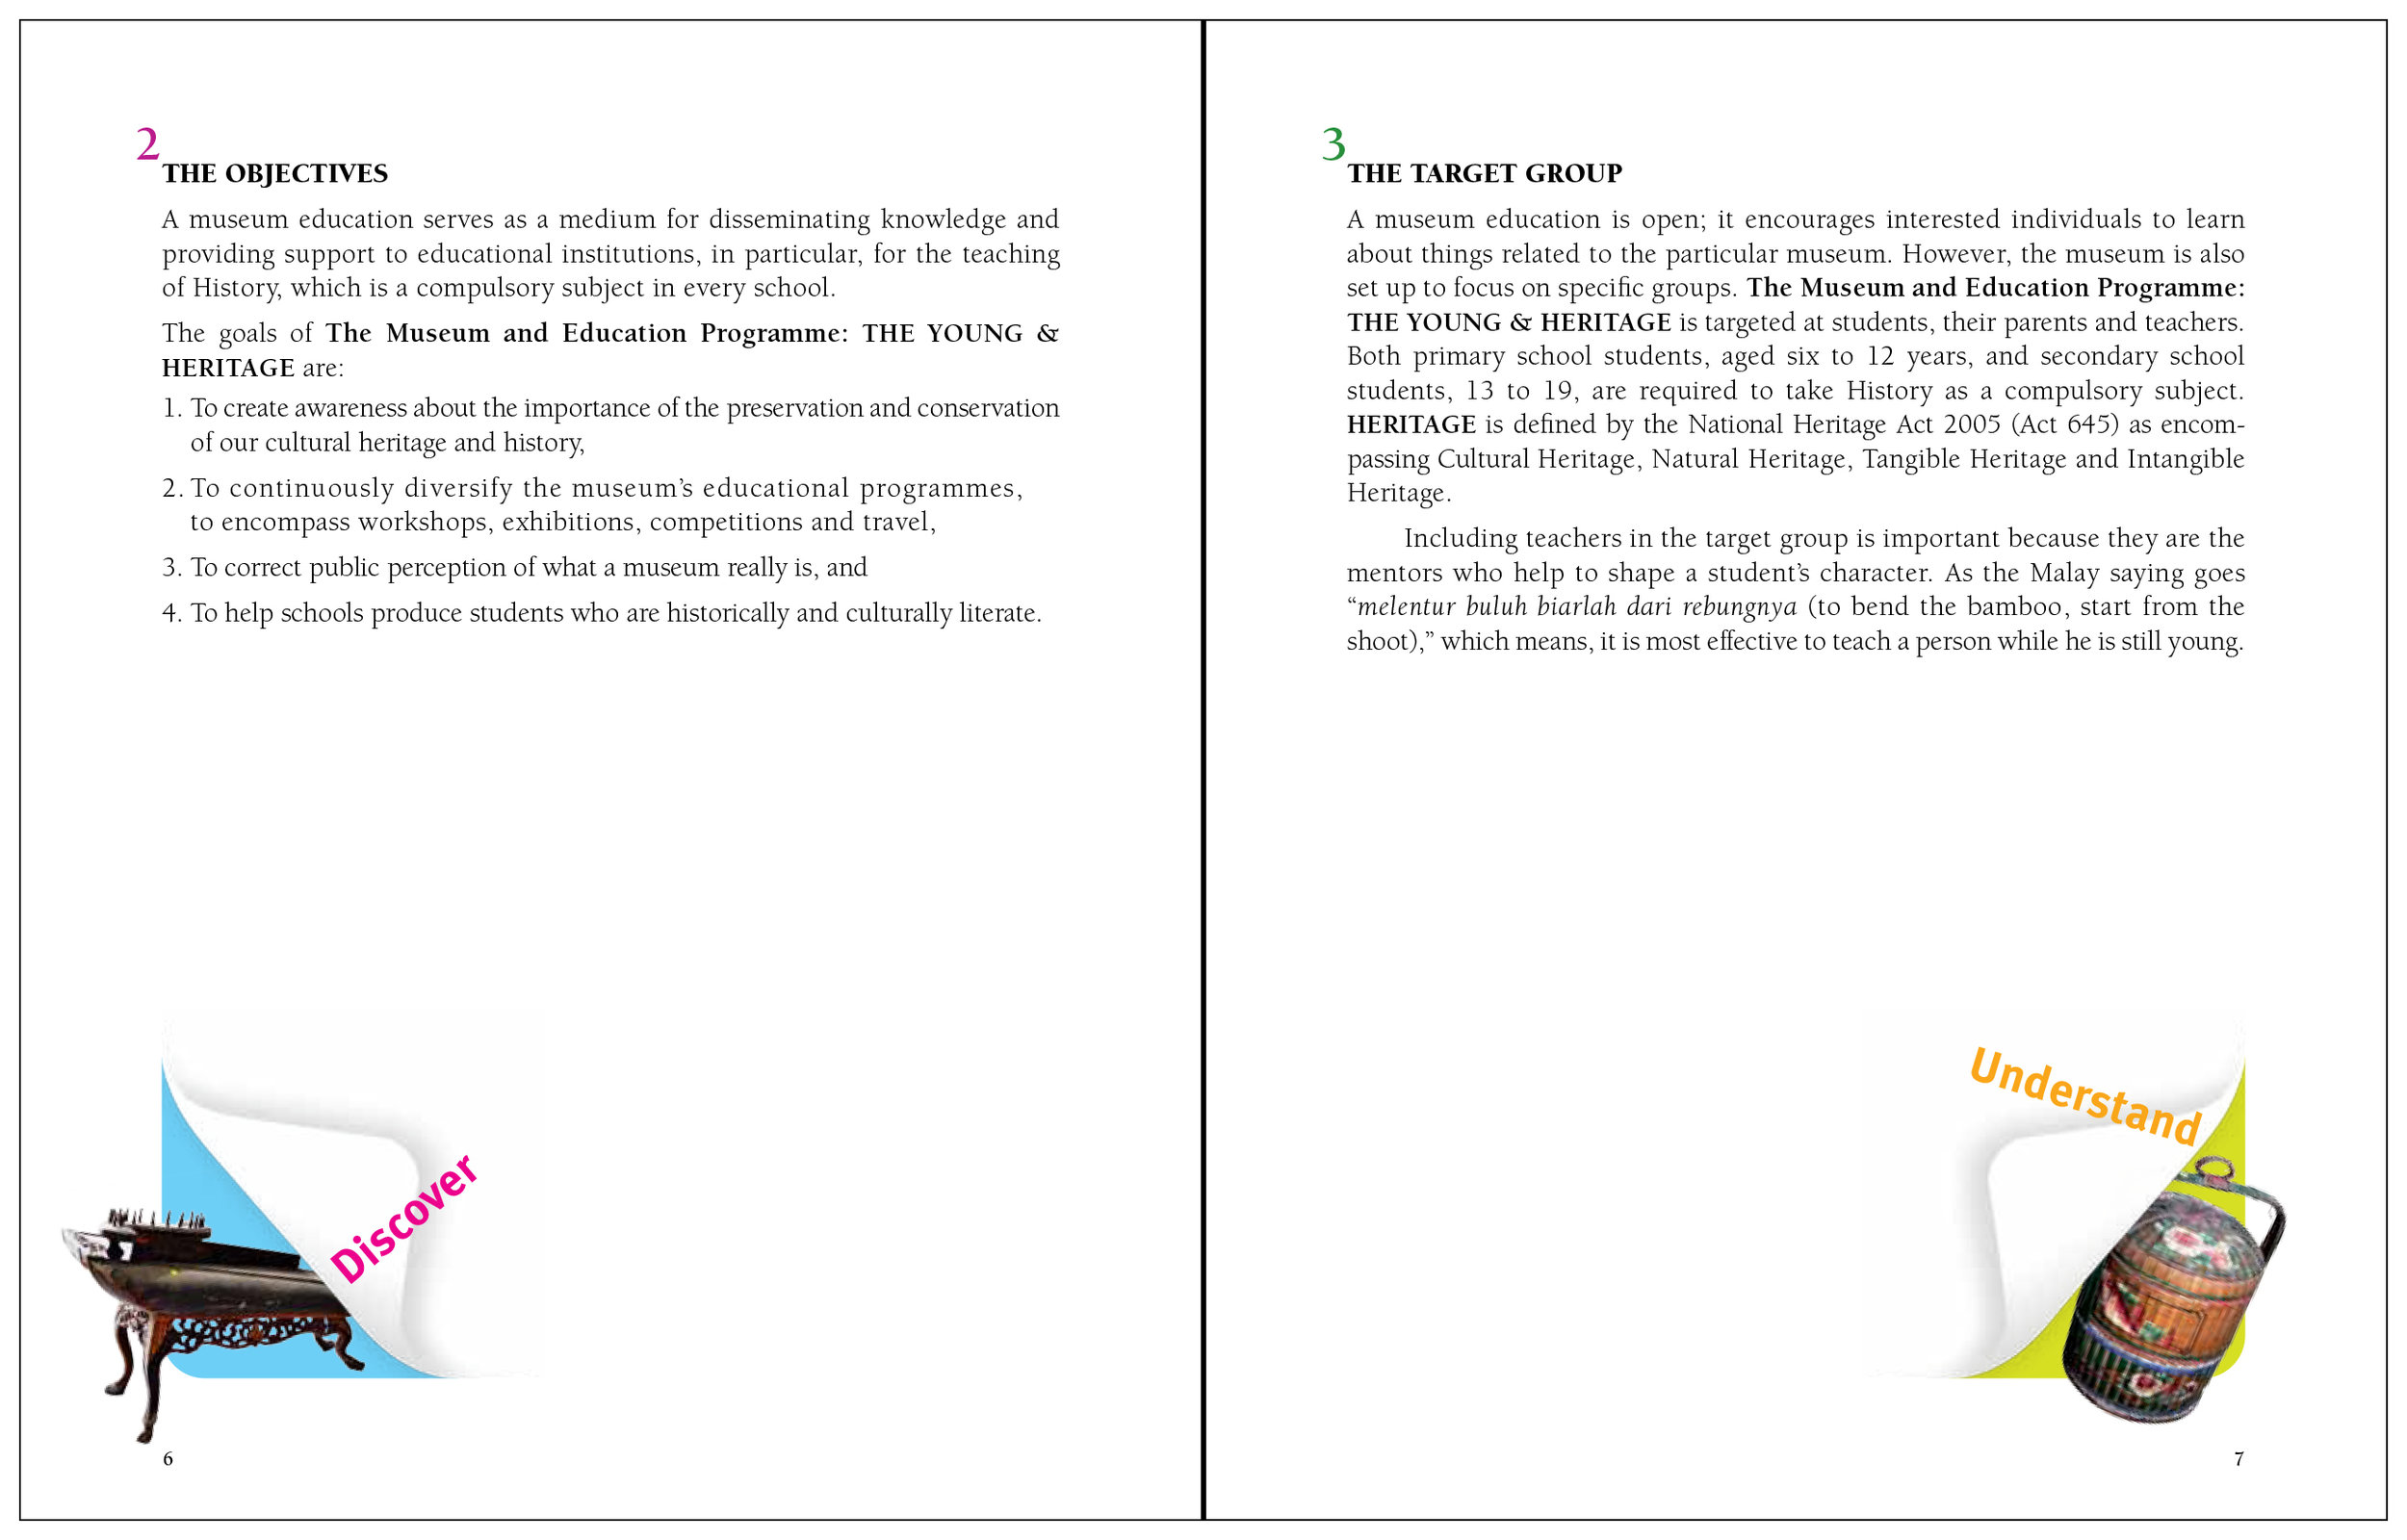 PM_Y&Heritage_Booklet_Inside Pages_ENG-4.jpg